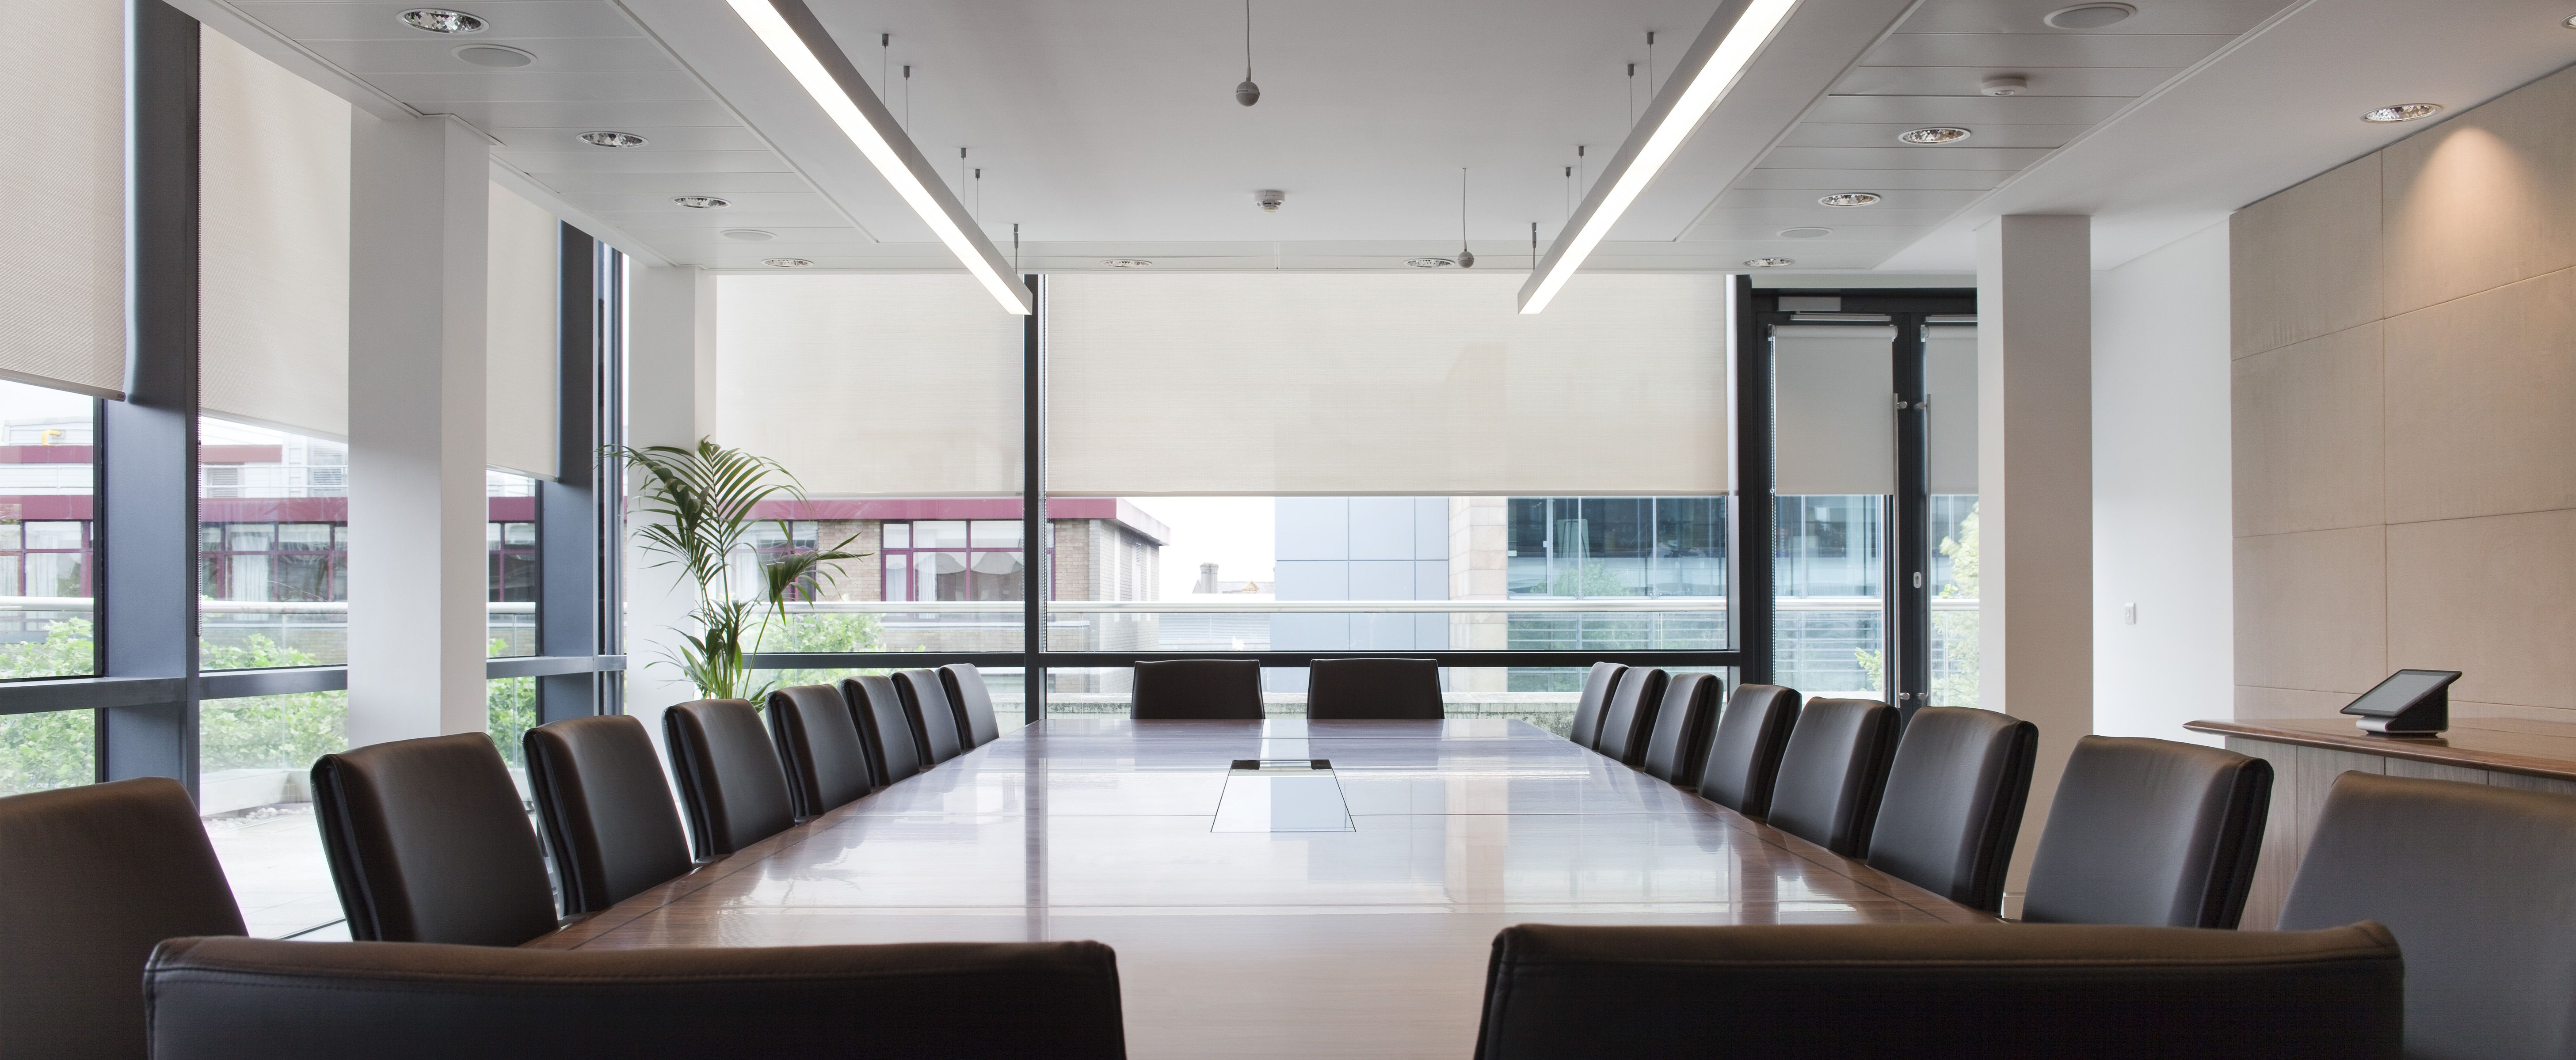 Interior Designs Modern Office Meeting Room With Stunning